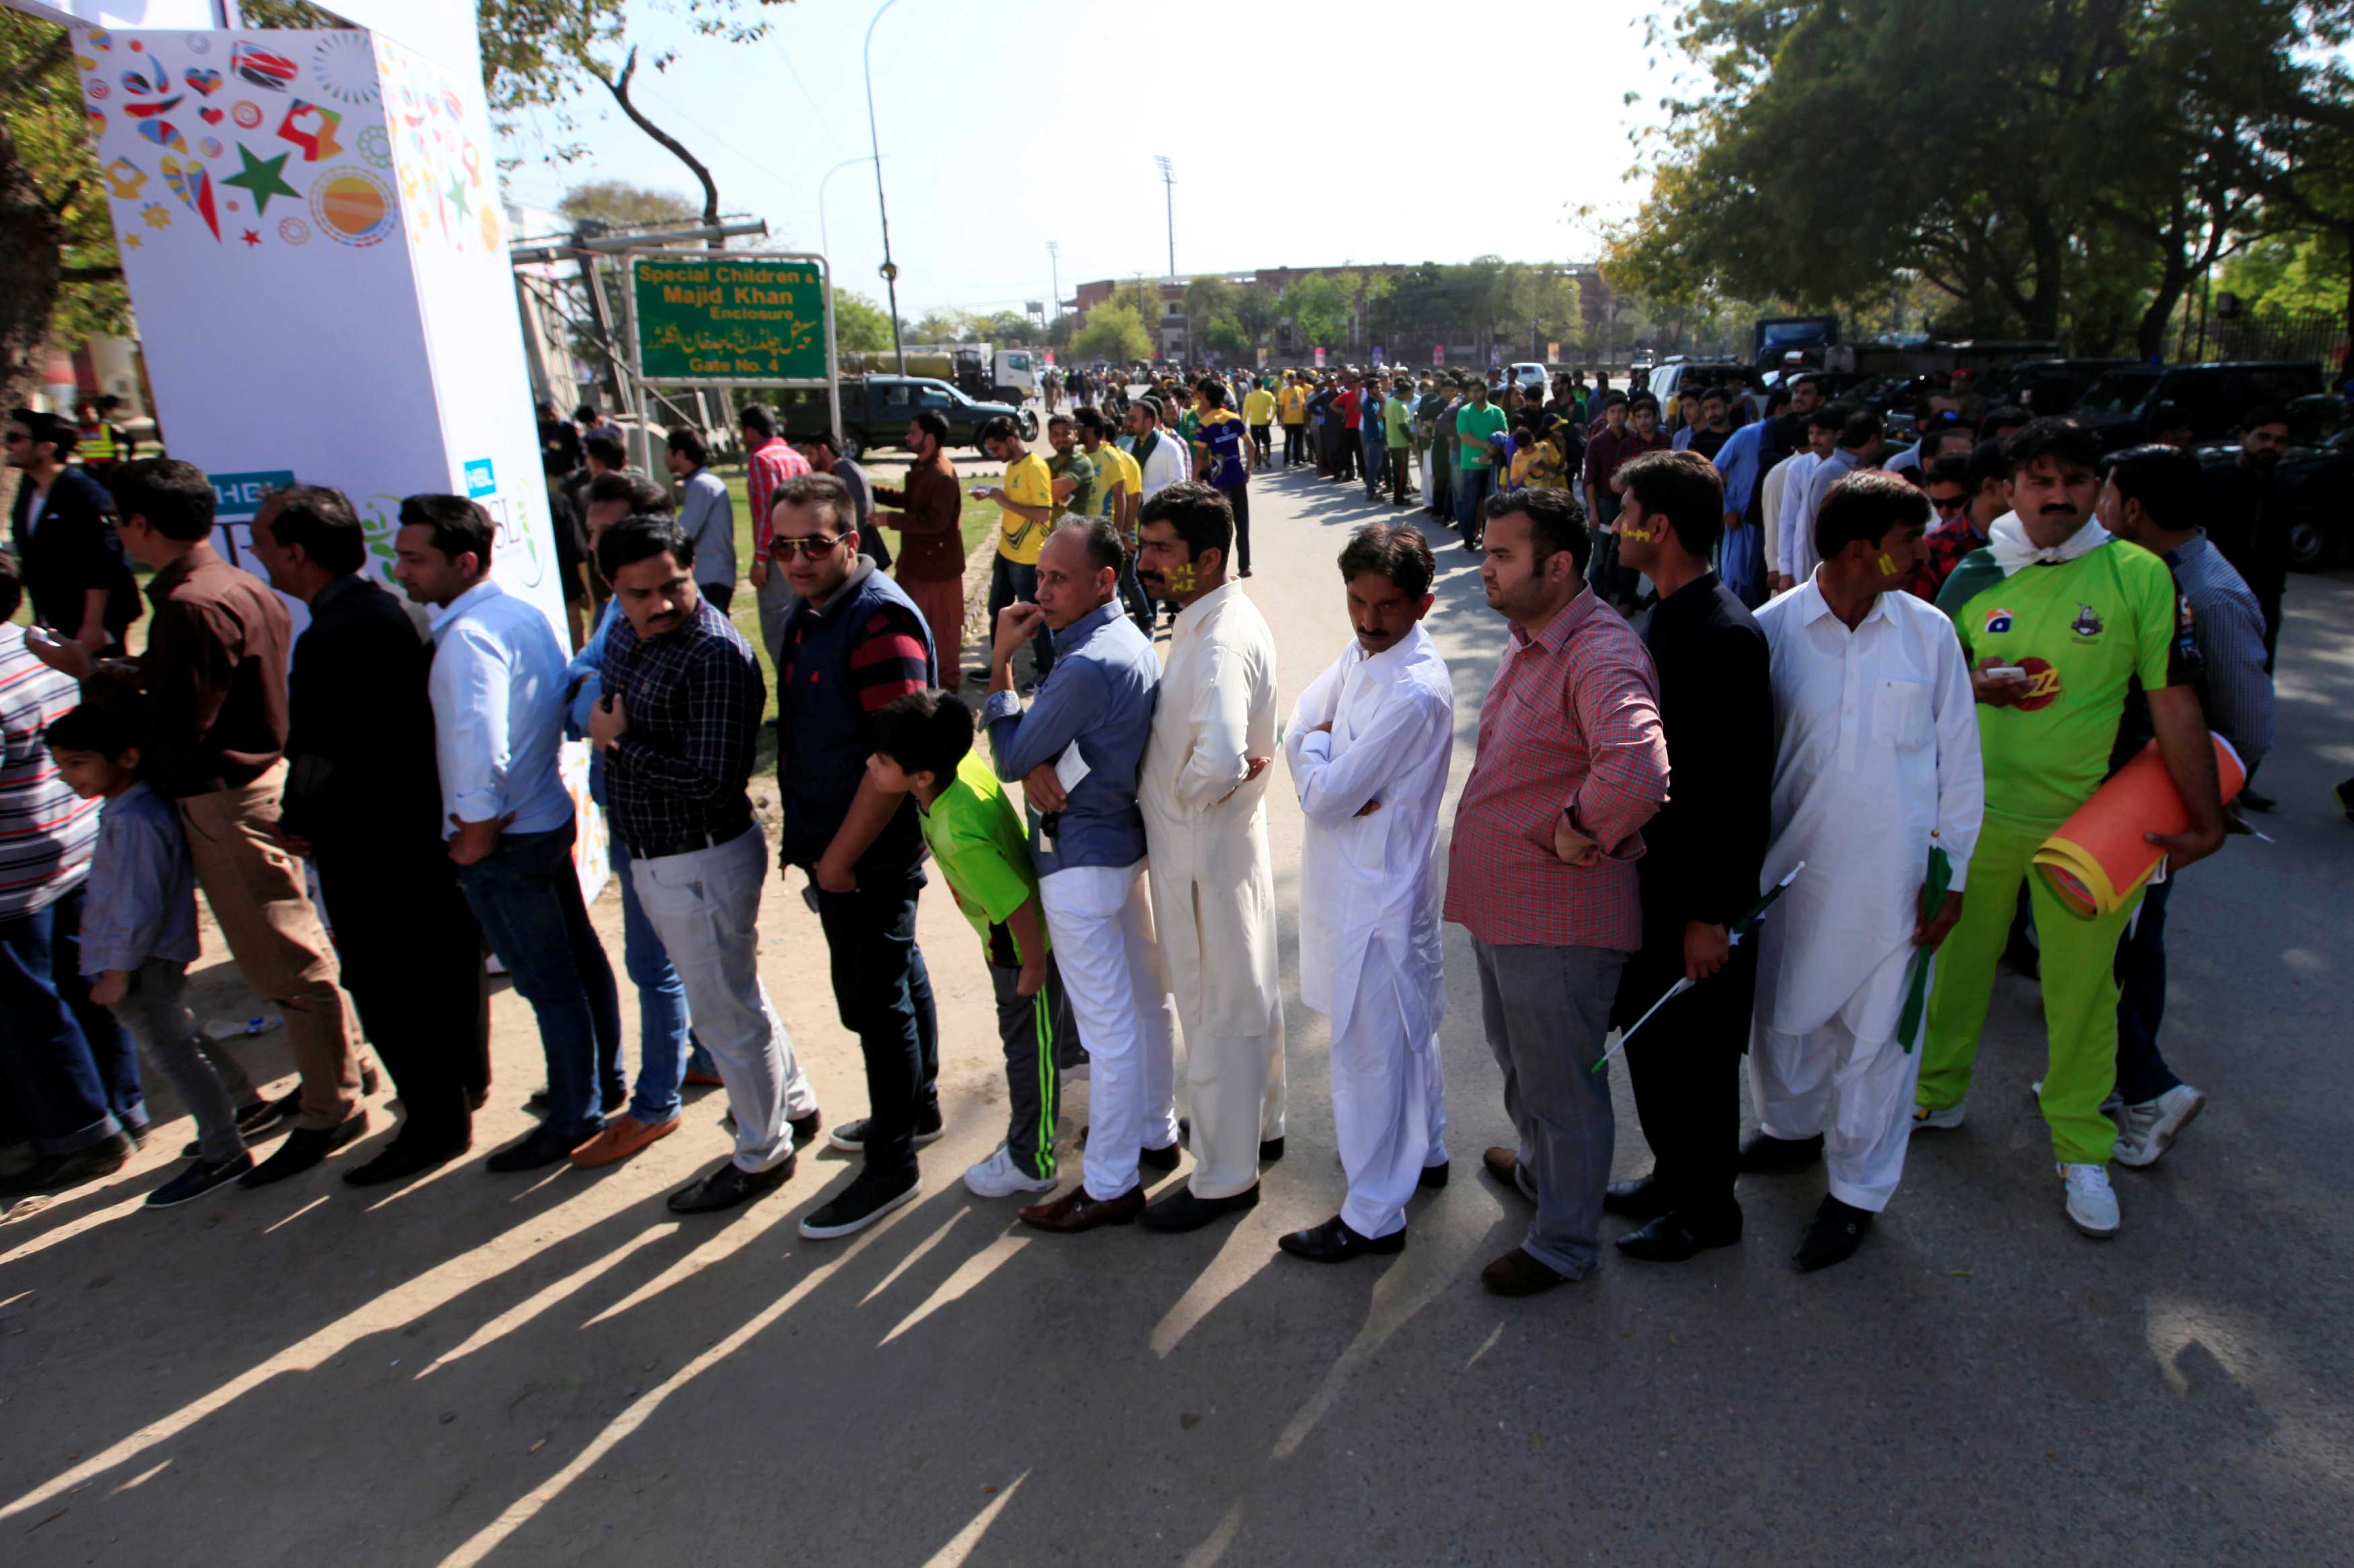 Spectators wait for their turn to enter Gaddafi Cricket Stadium to watch hugely anticipated final of  the Pakistan Super League (PSL) in Lahore. -Reuters